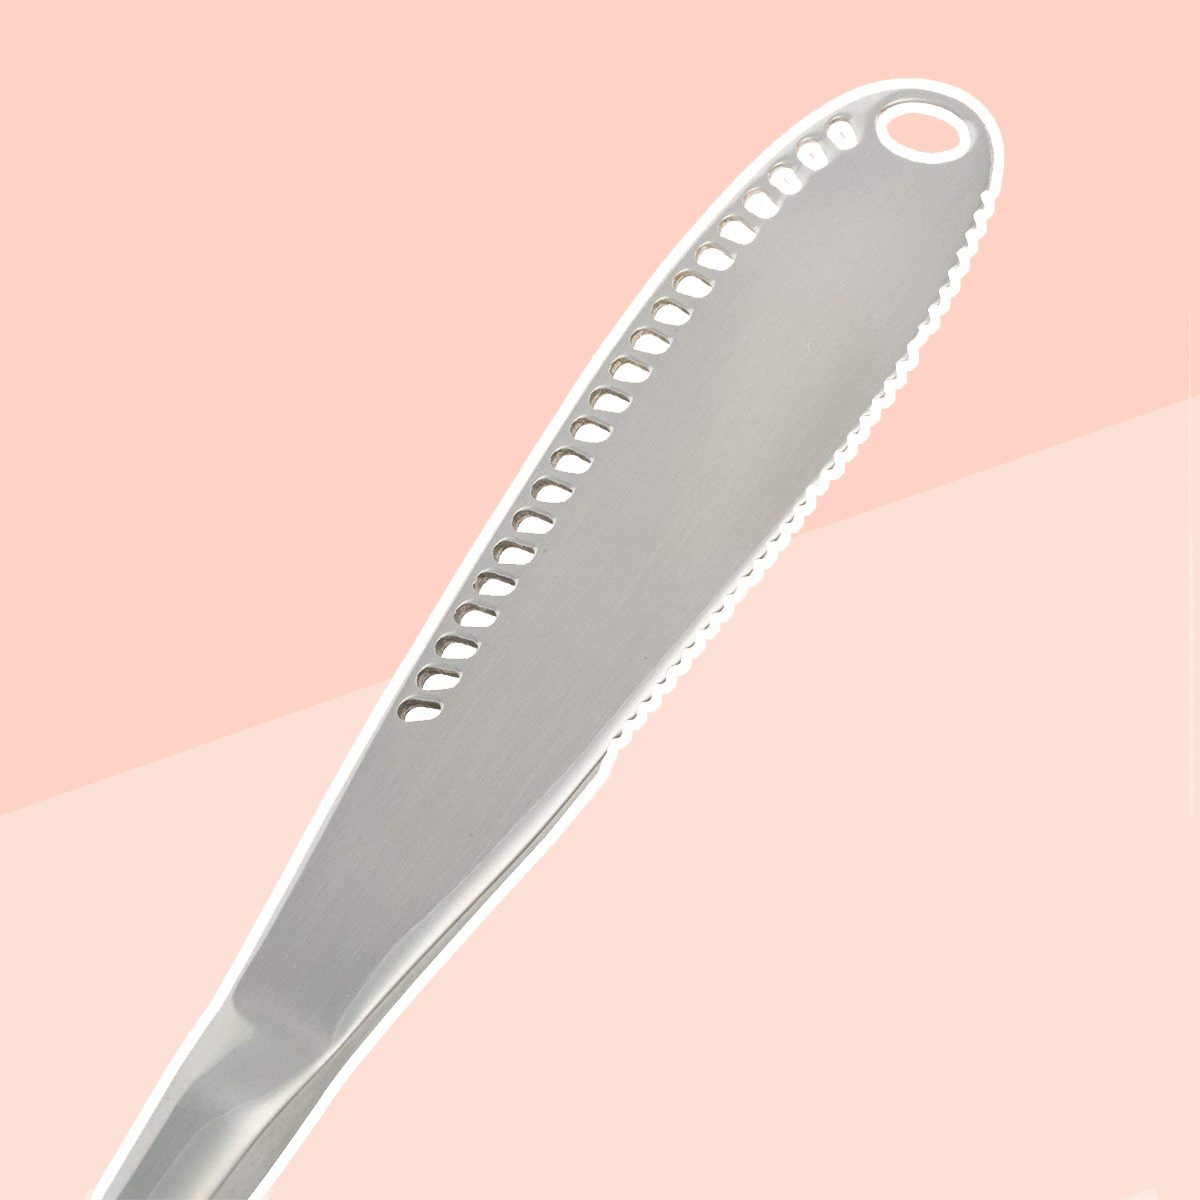 Stainless Steel Butter Spreader Knife - 3 in 1 Curler, Spreader and Slicer Butter Knife with Serrated Edge - Set of 2 Units